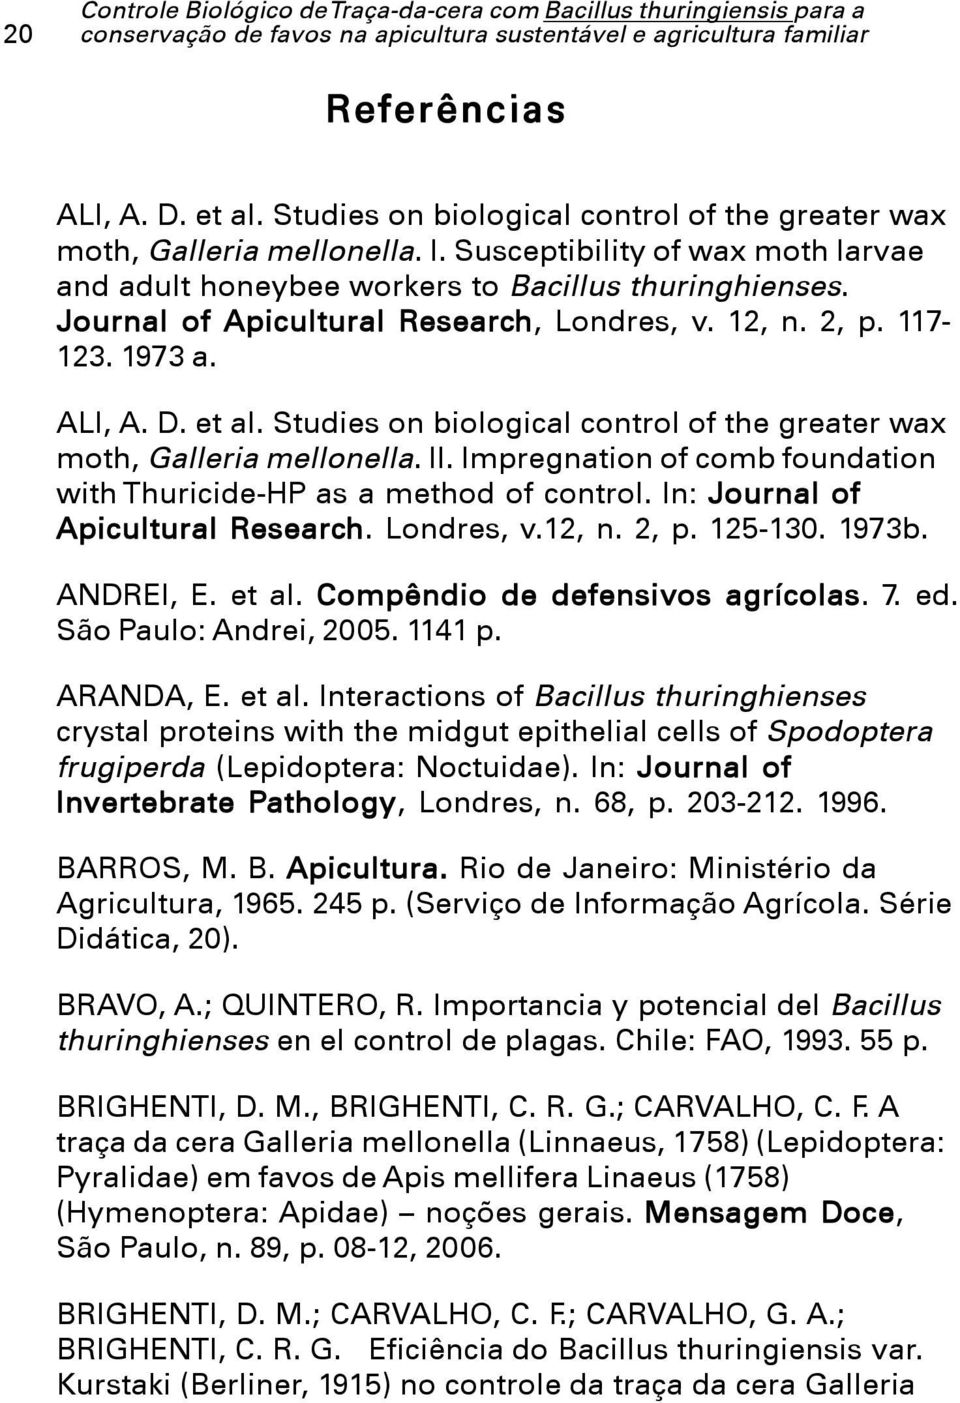 Studies on biological control of the greater wax moth, Galleria mellonella. II. Impregnation of comb foundation with Thuricide-HP as a method of control. In: Journal of Apicultural Research.